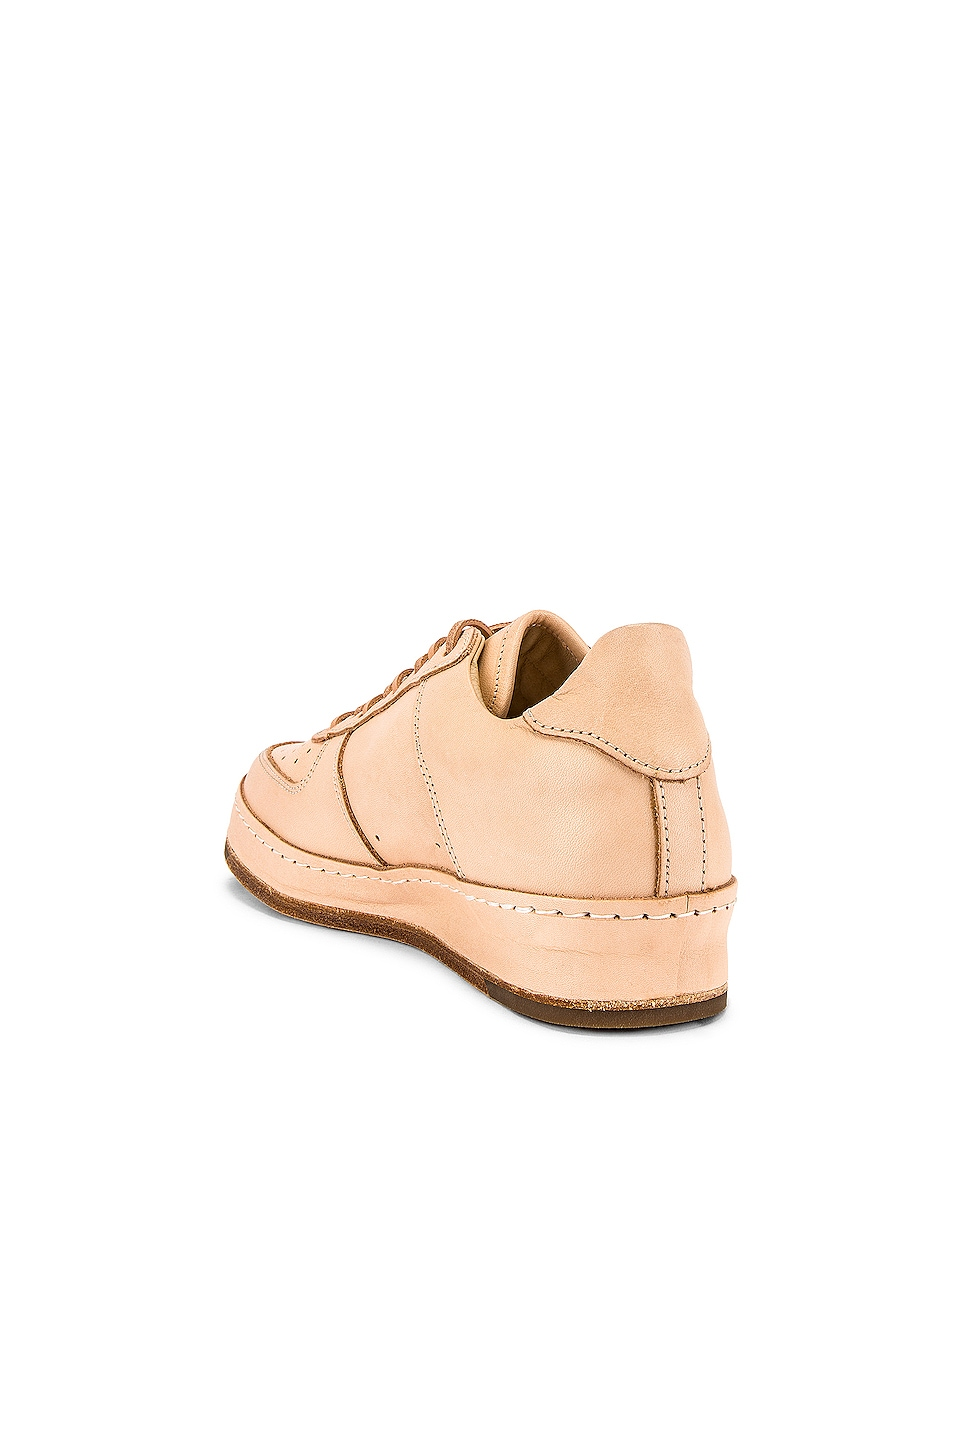 Image 3 of Hender Scheme Manual Industrial Product 22 in Natural